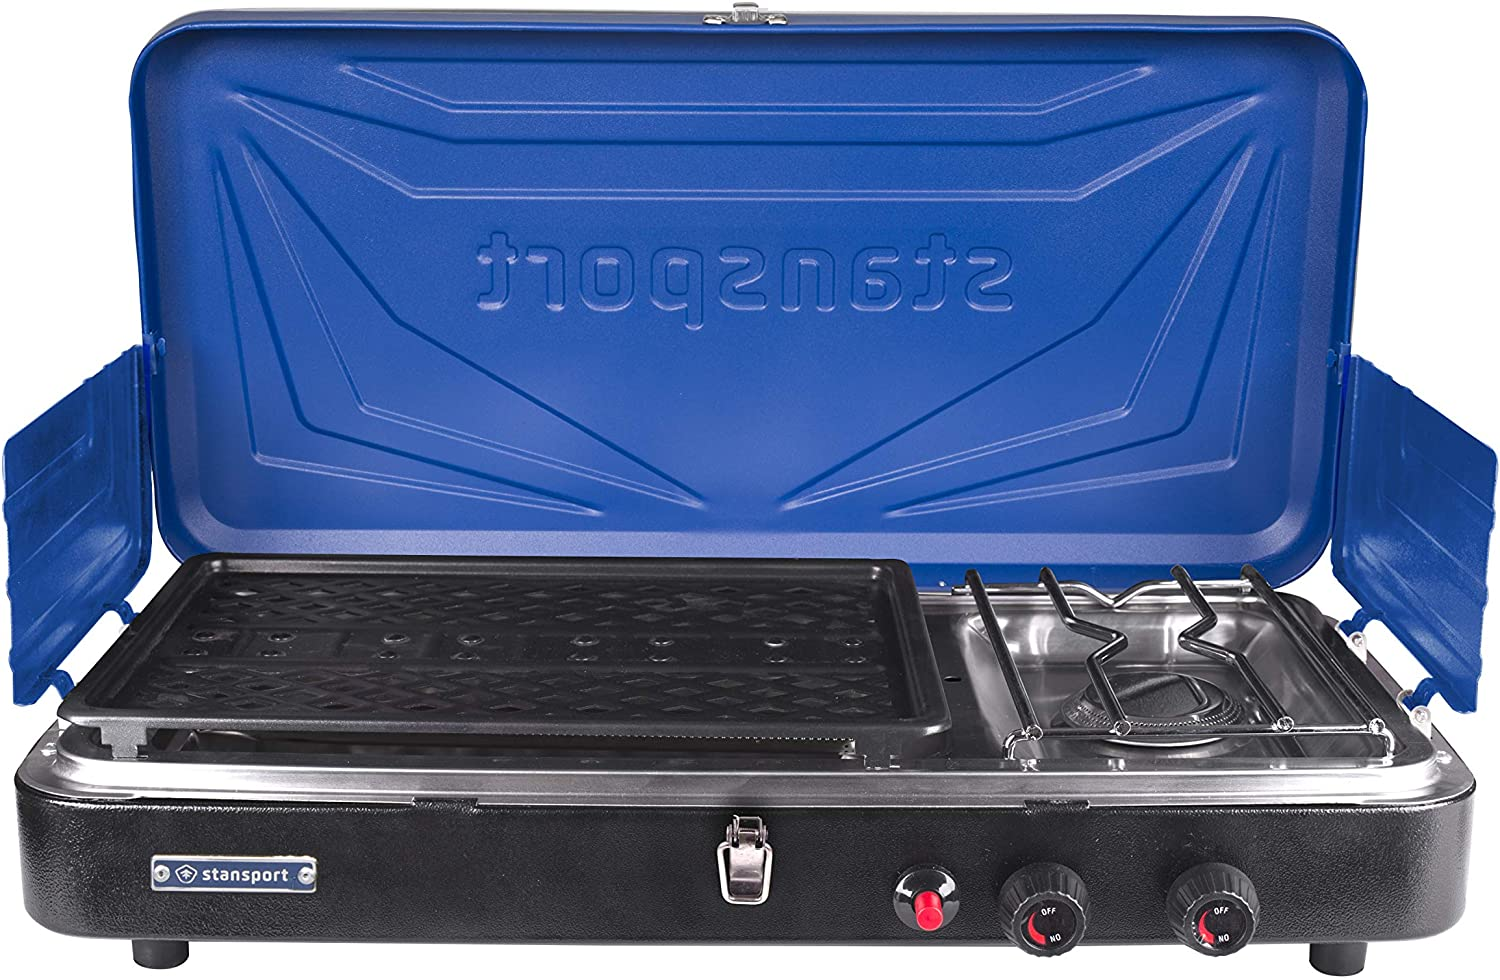 Stansport Outfitter Series 3-Burner